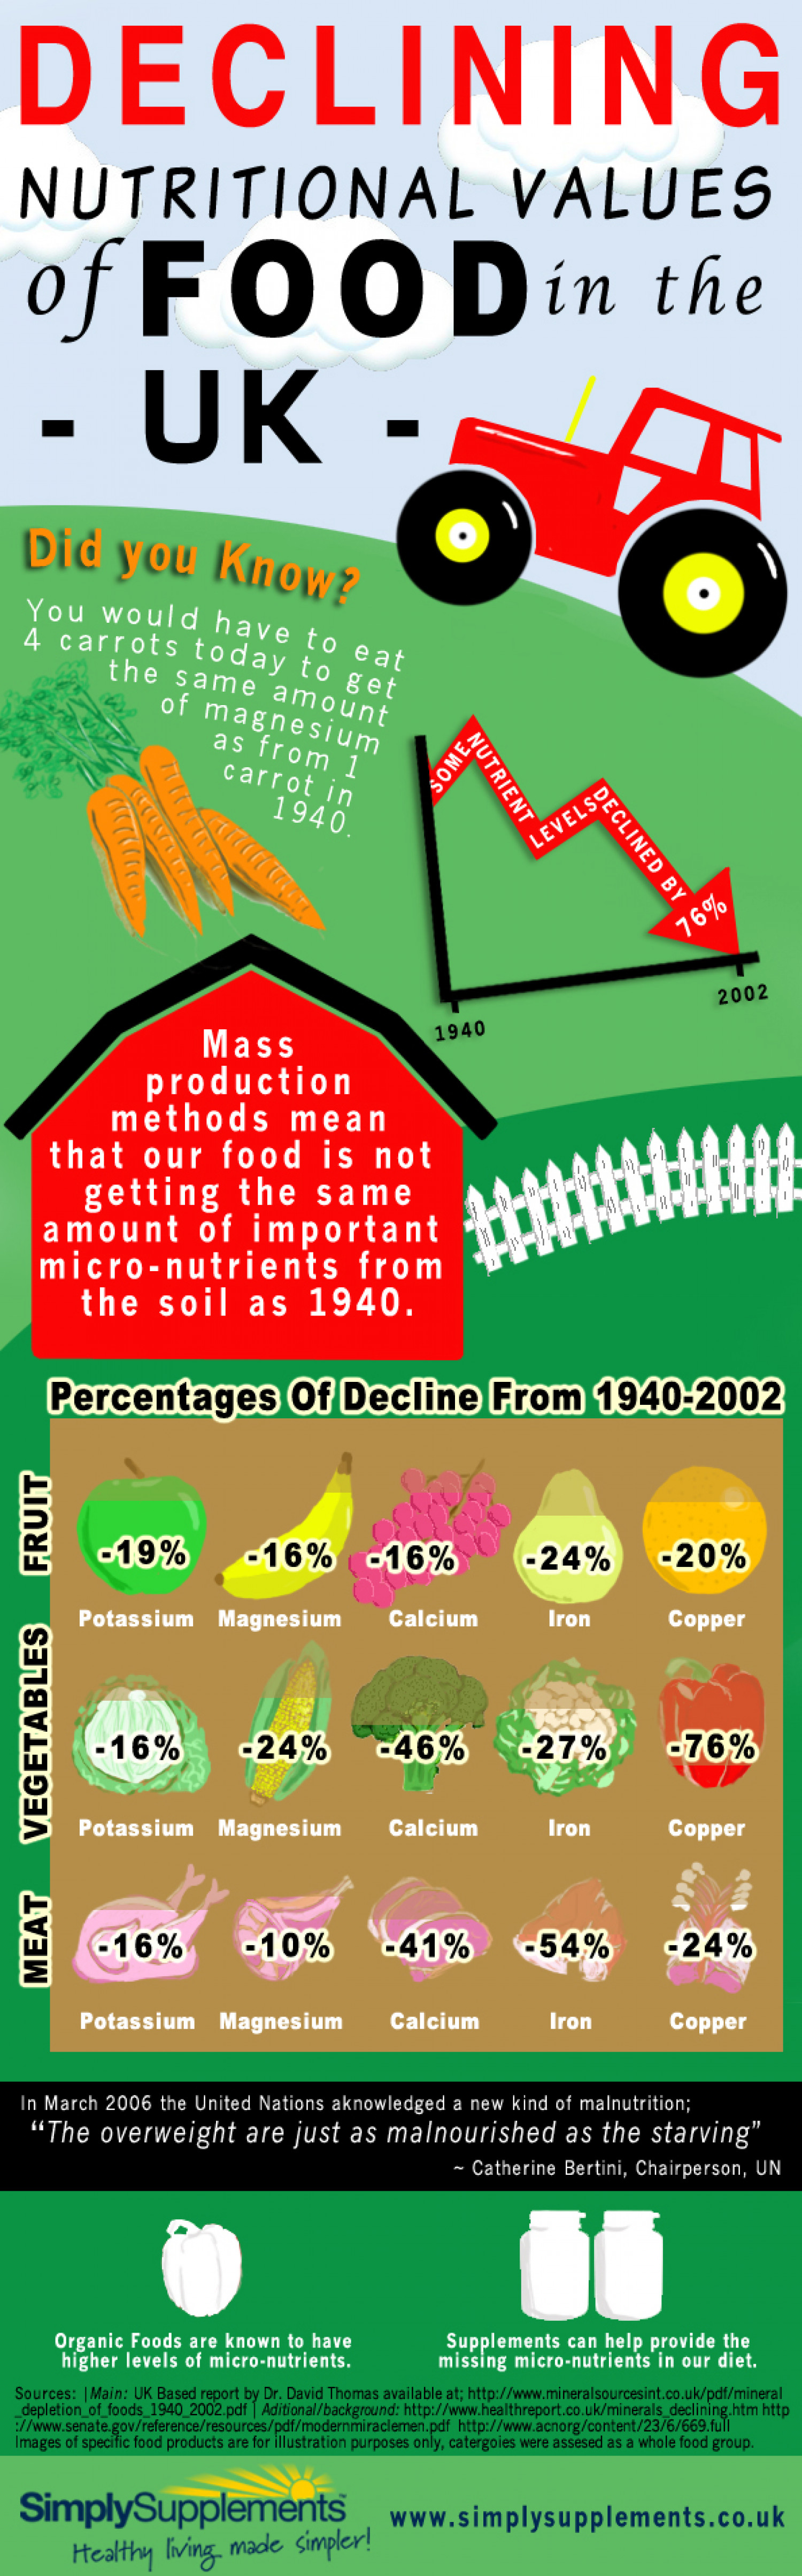 Nutritional decline in the UK  Infographic